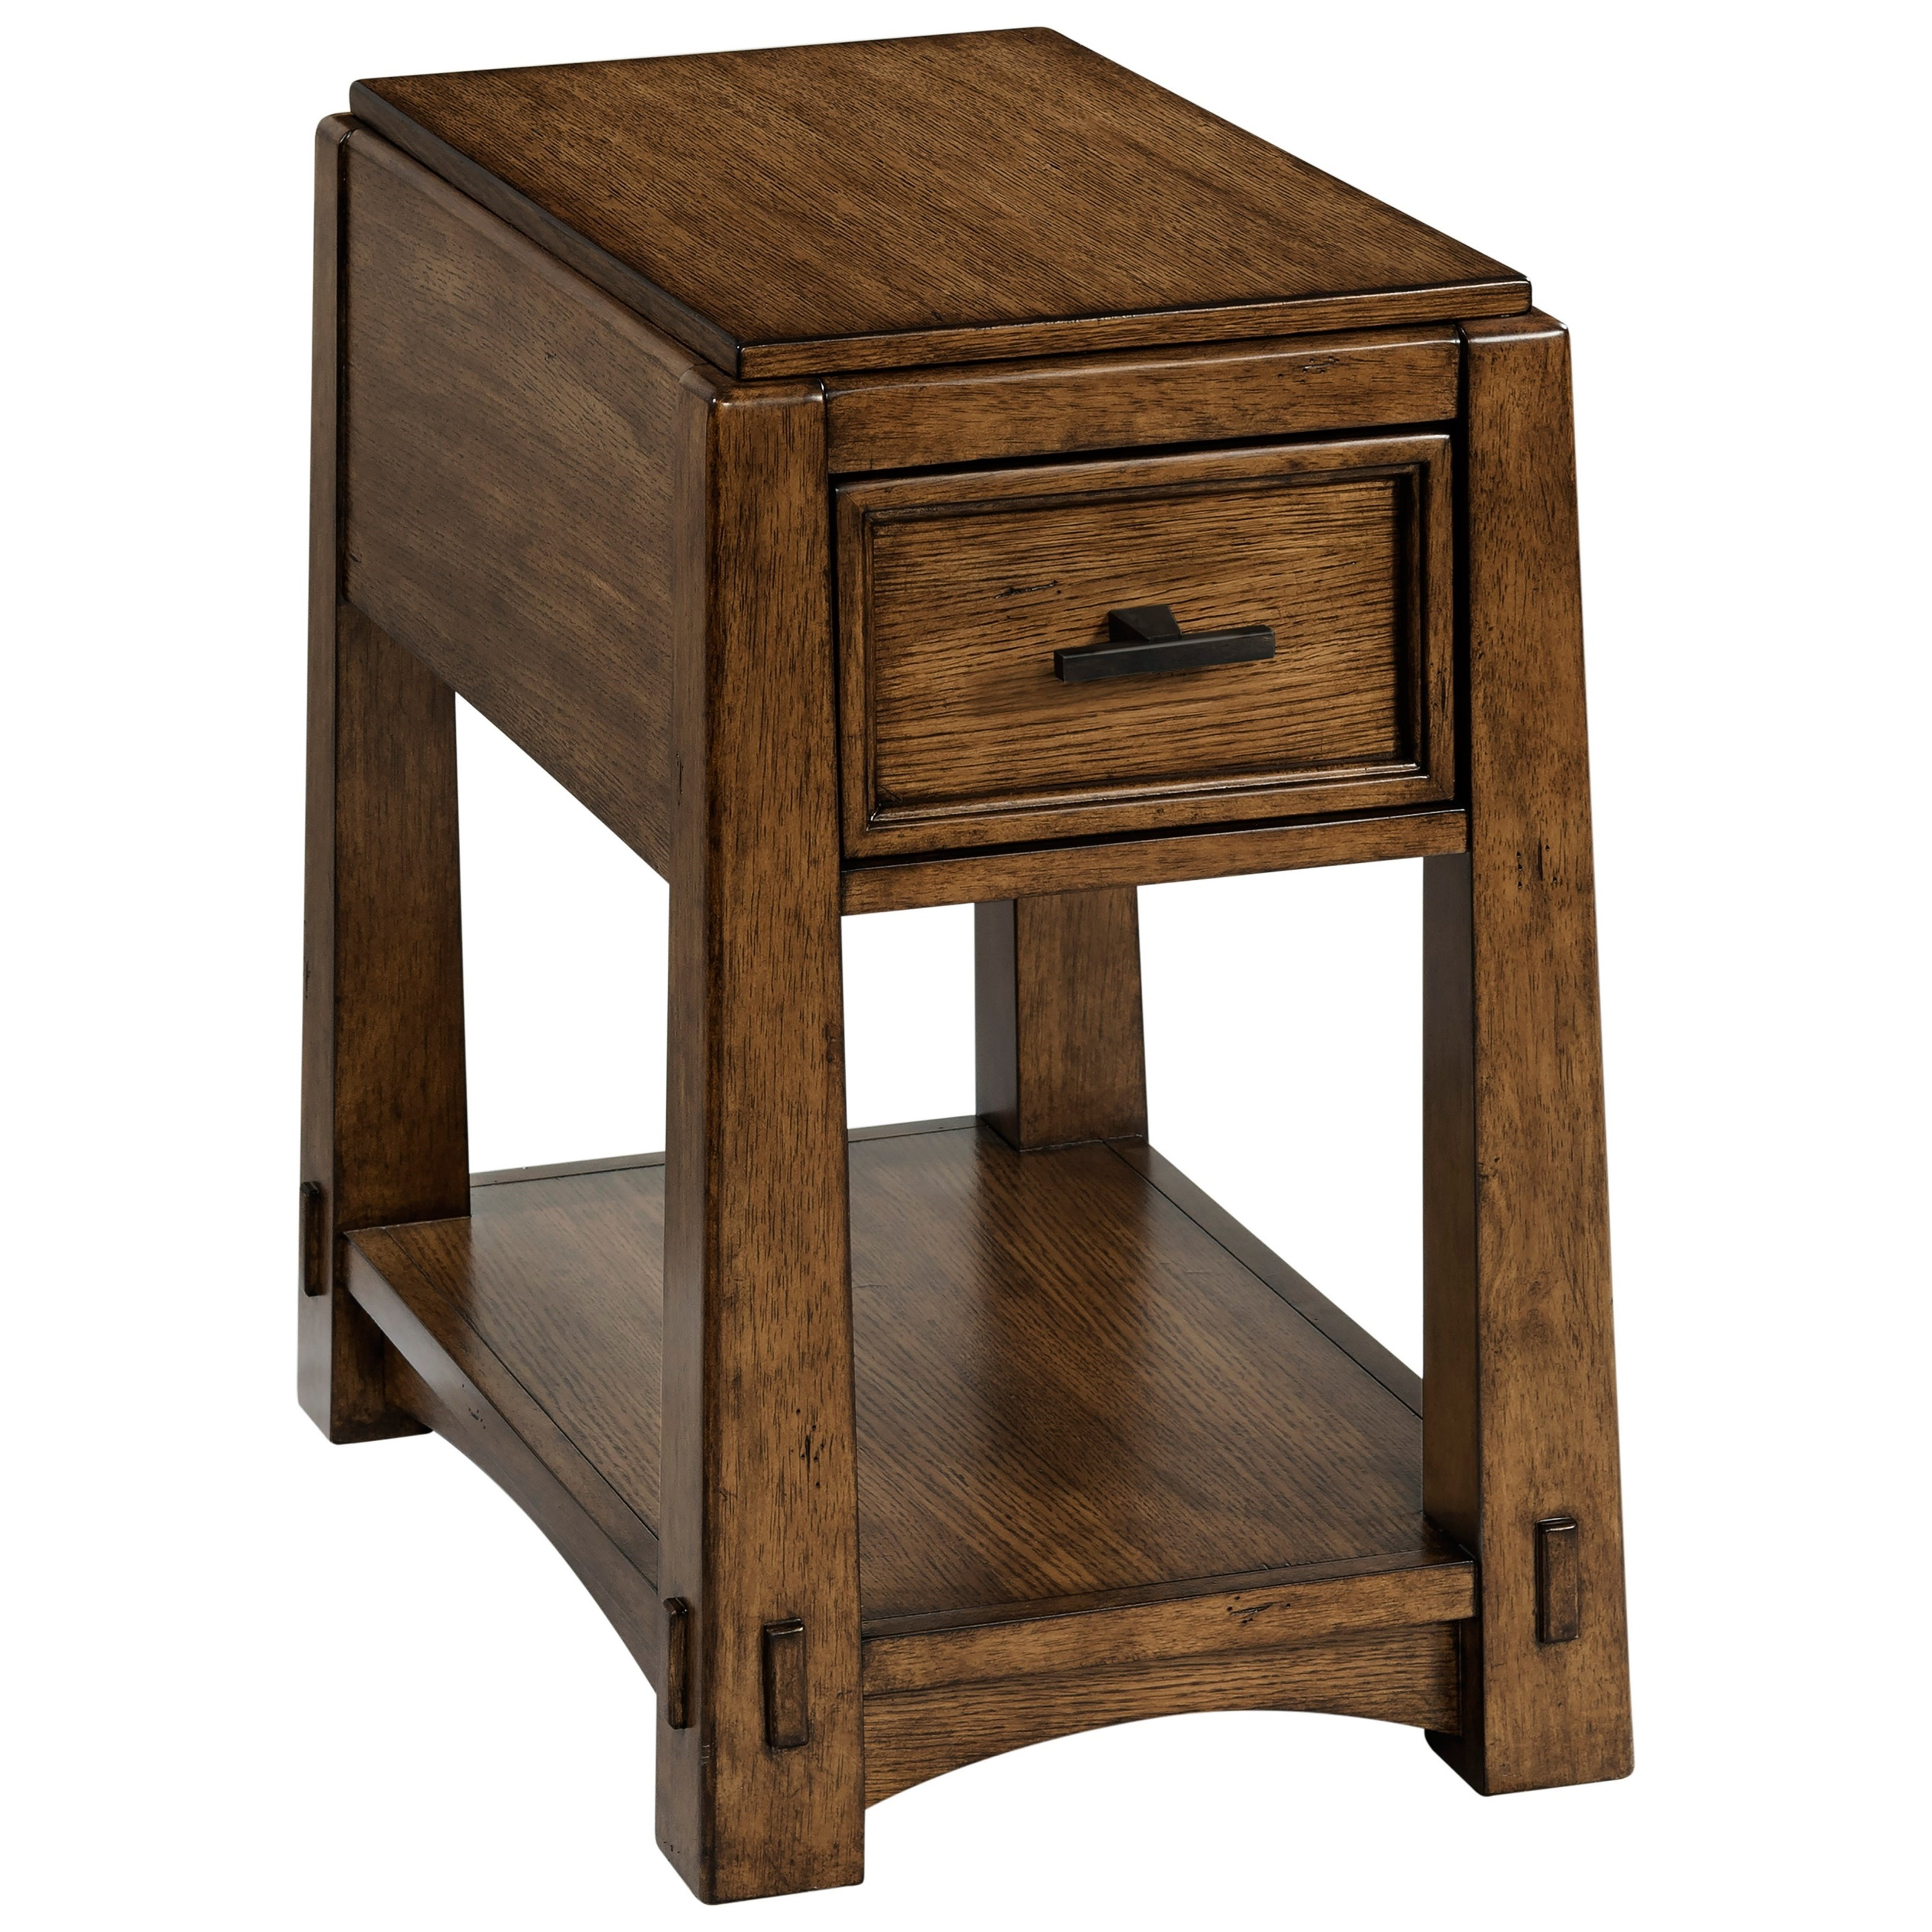 Broyhill Furniture Winslow Park Chairside Table   Item Number: 4604 004